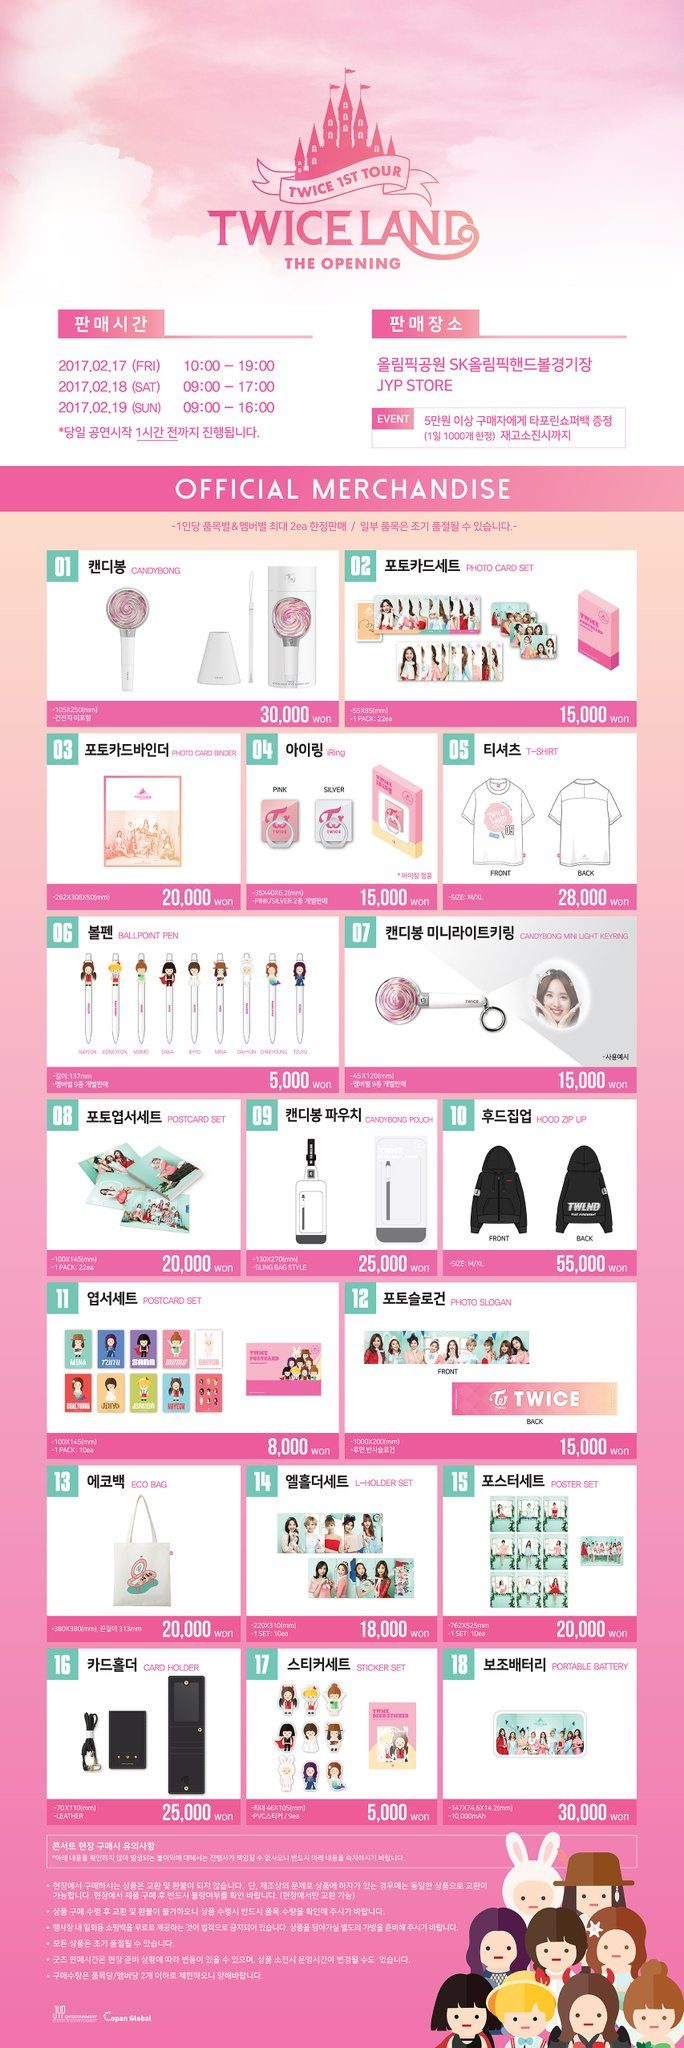 The Ultimate Guide To TWICE's Official Merchandise Since Debut